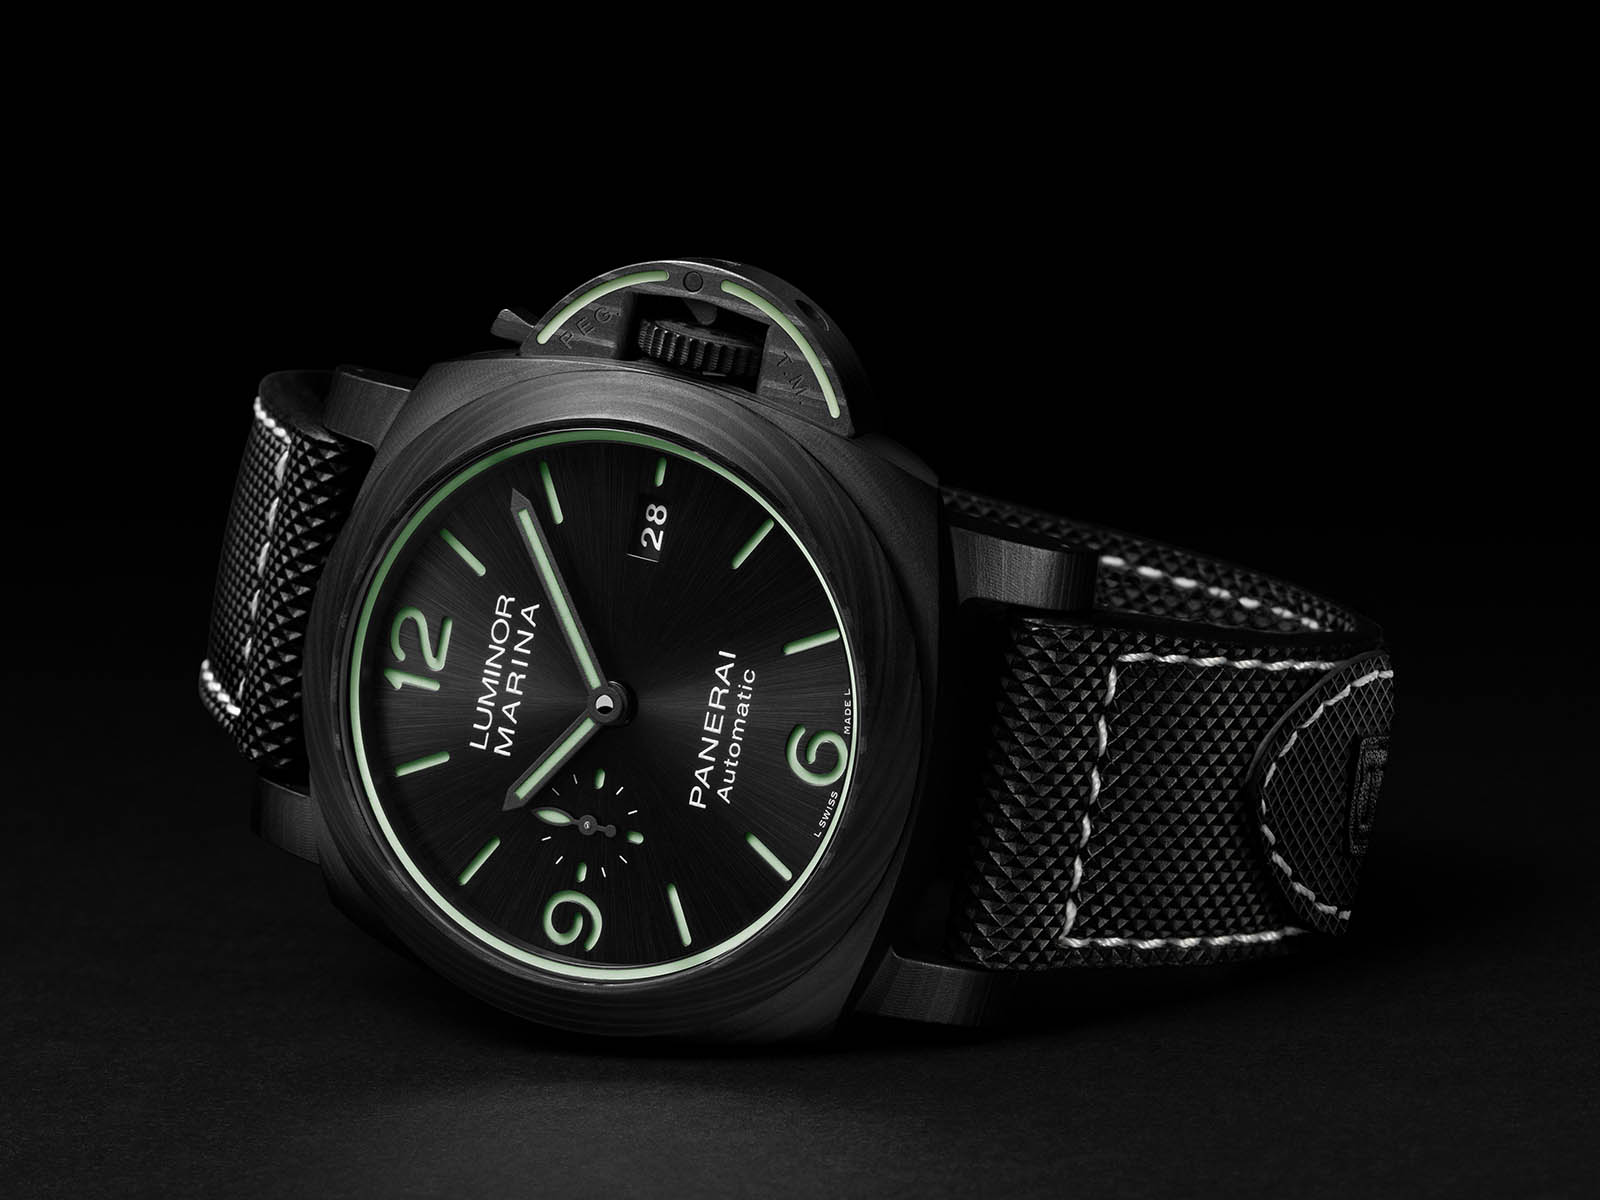 pam01118-officine-panerai-luminor-marina-carbotech-44mm-1.jpg